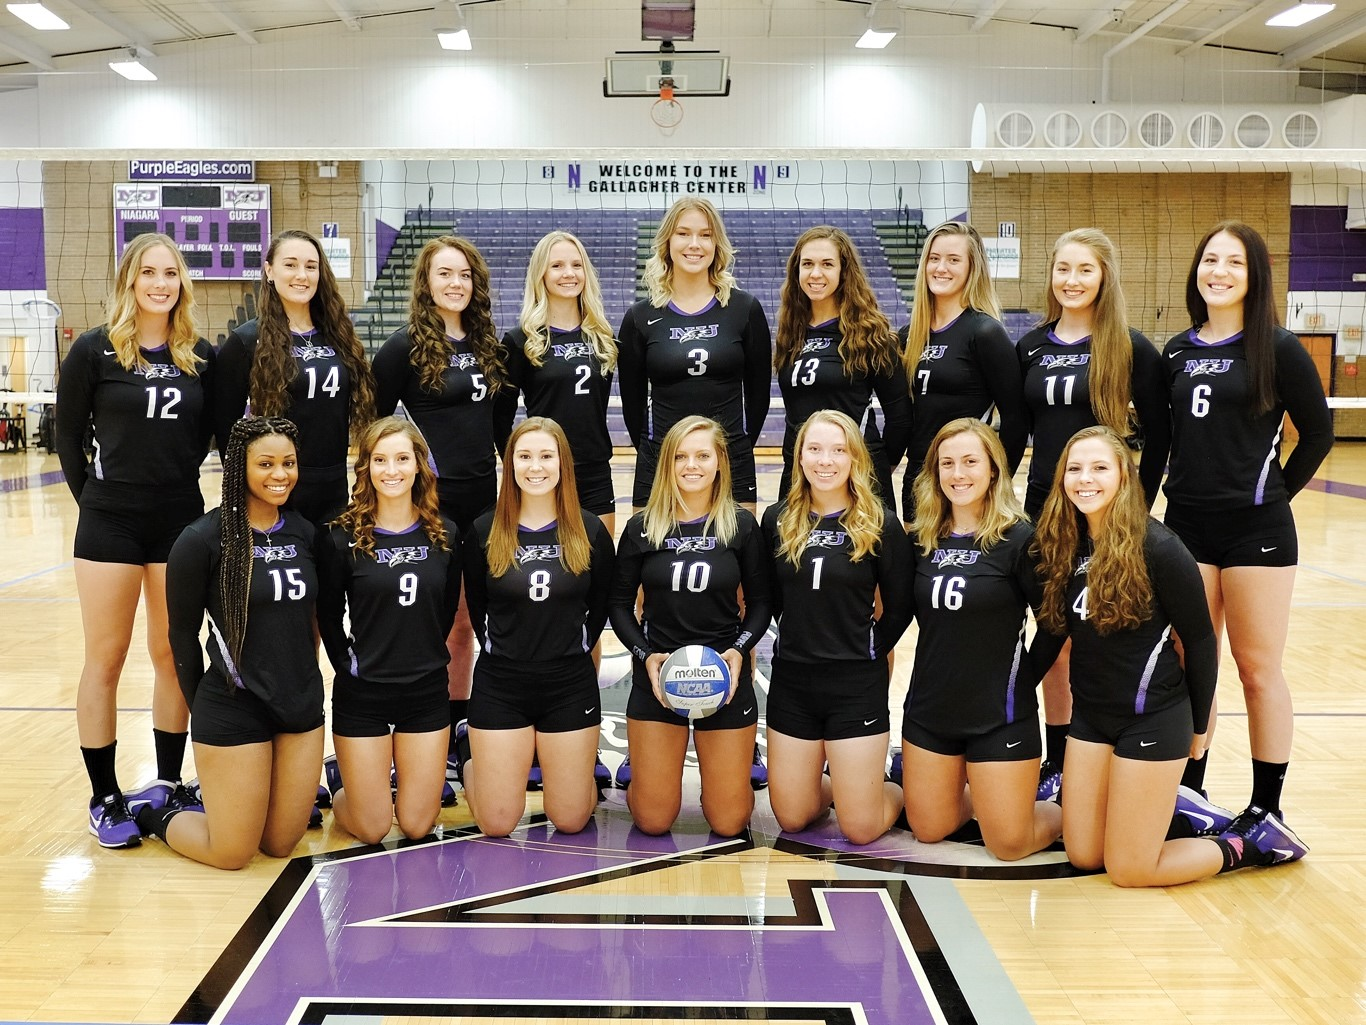 2017 Women's Volleyball Roster - Niagara University Athletics